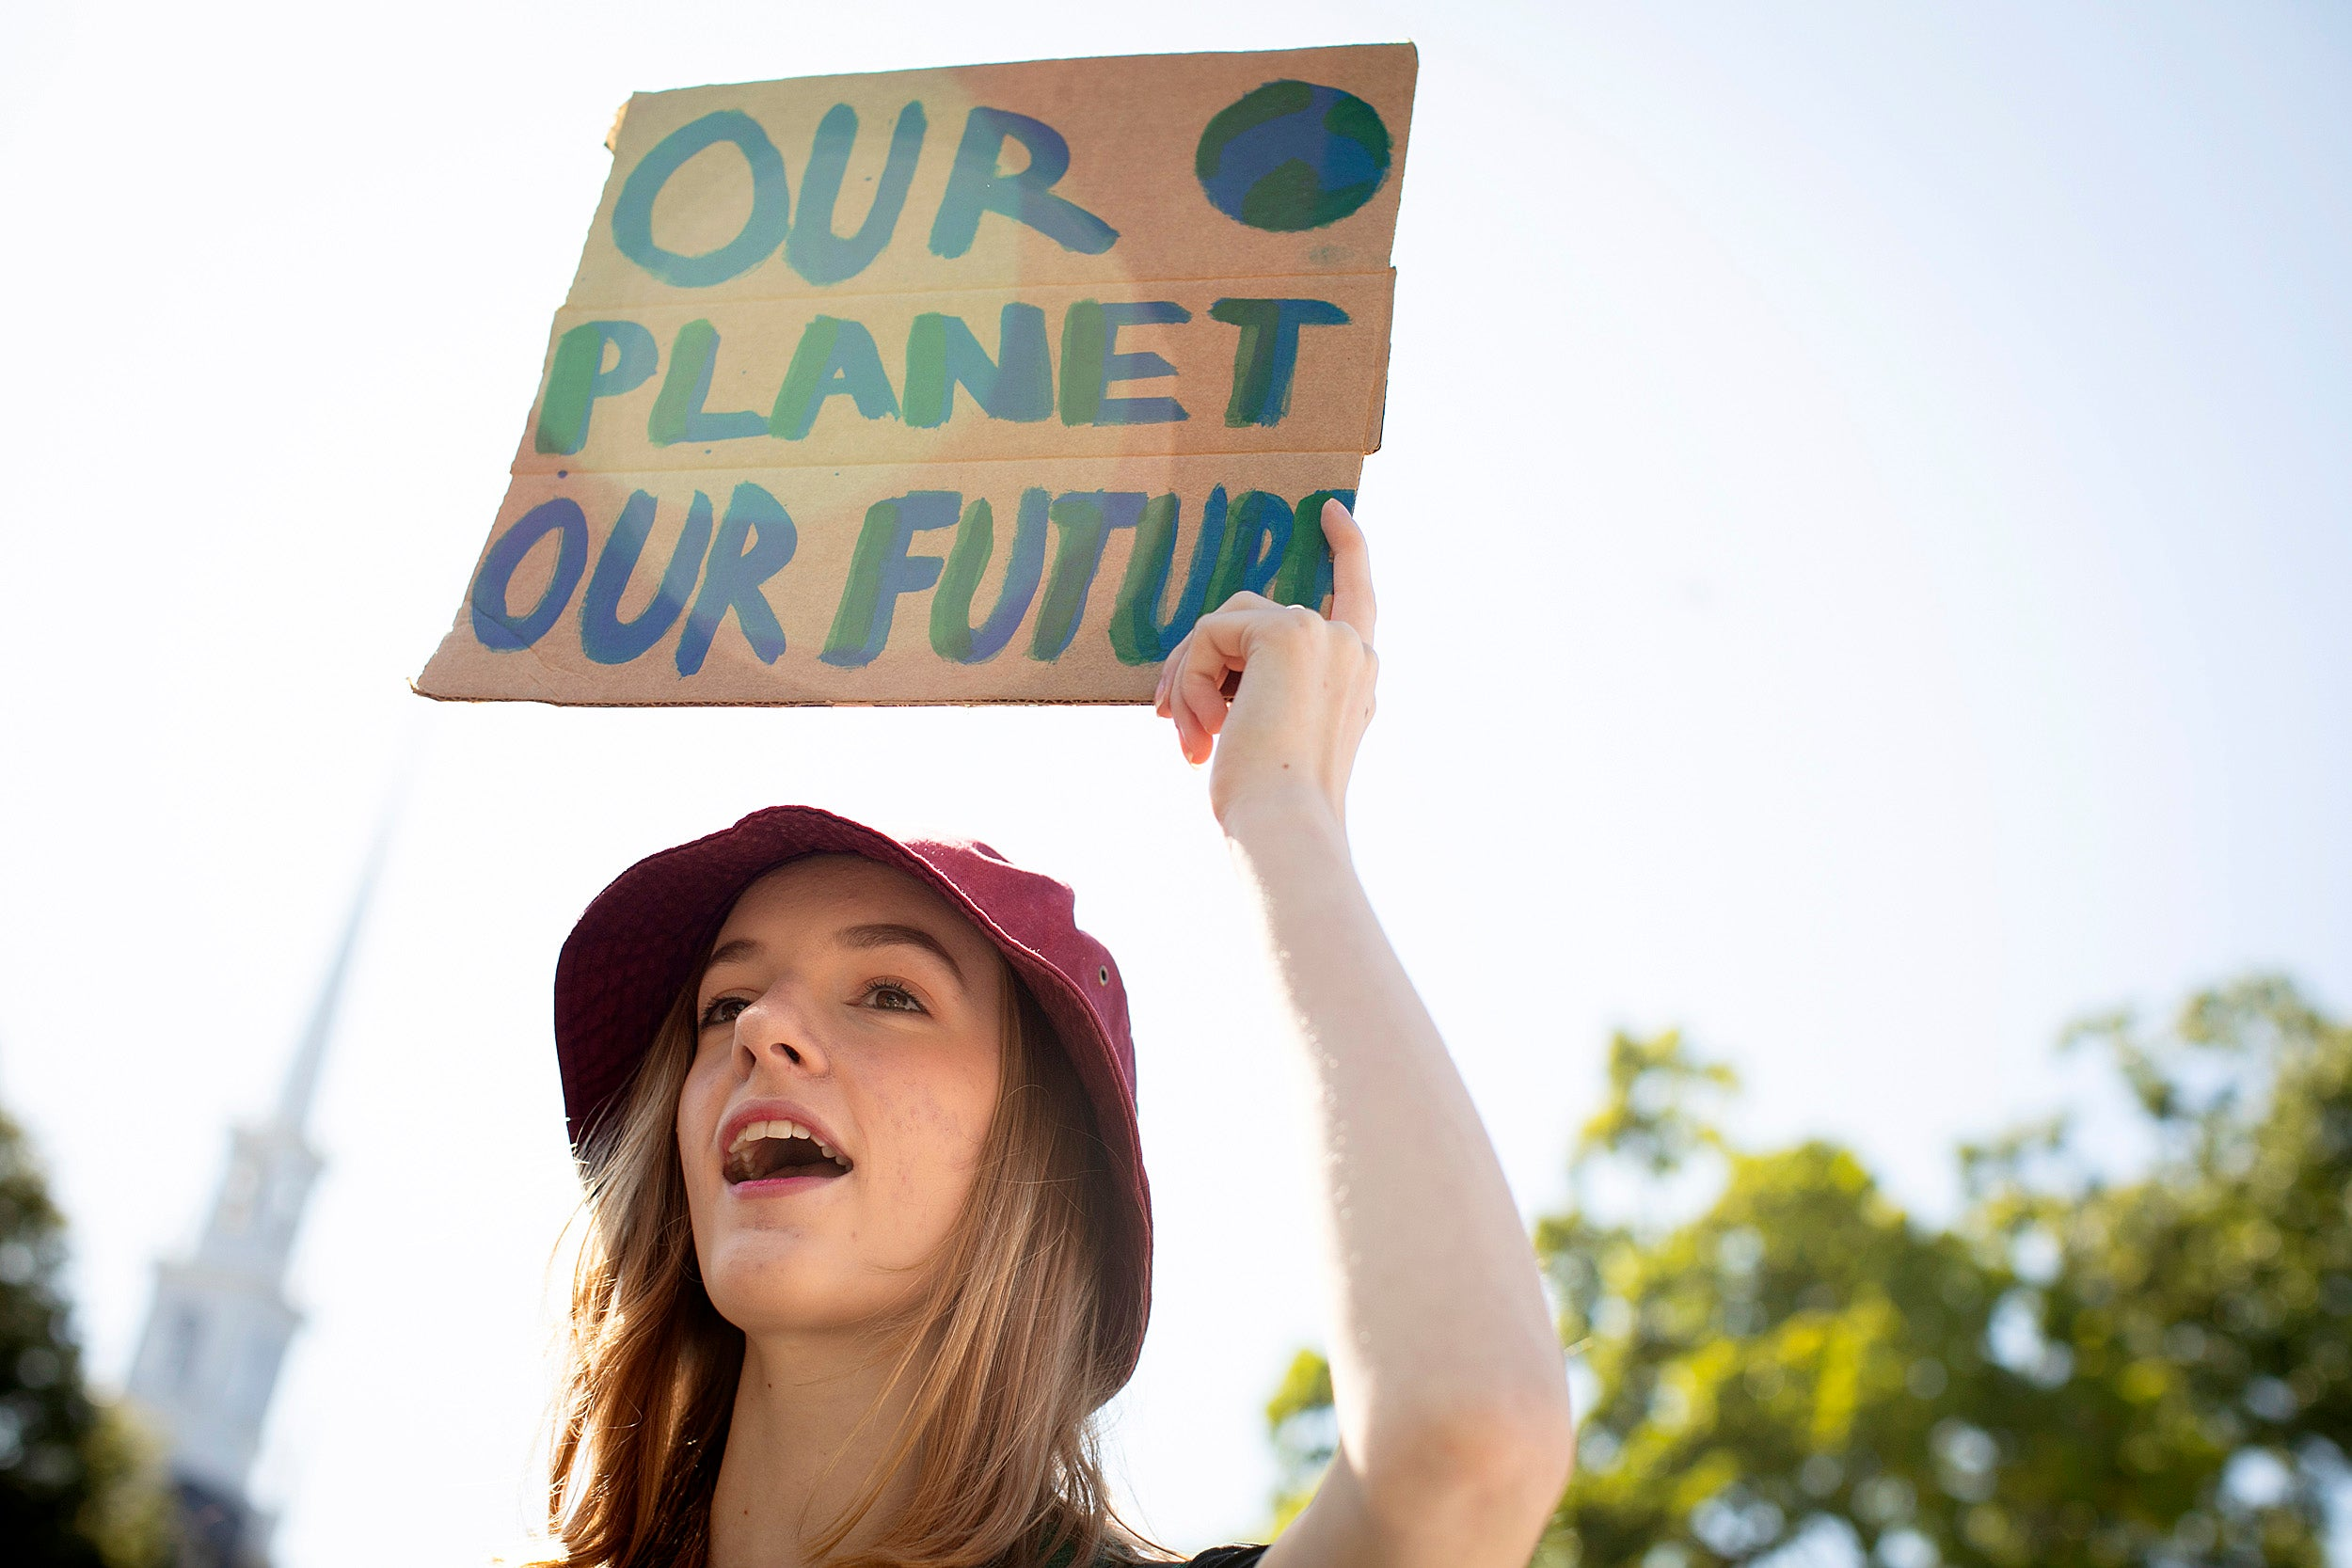 Harvard Strike for Climate Justice takes place on Harvard Science Center Plaza. Lily Hall '21 raises a sign during the rally.